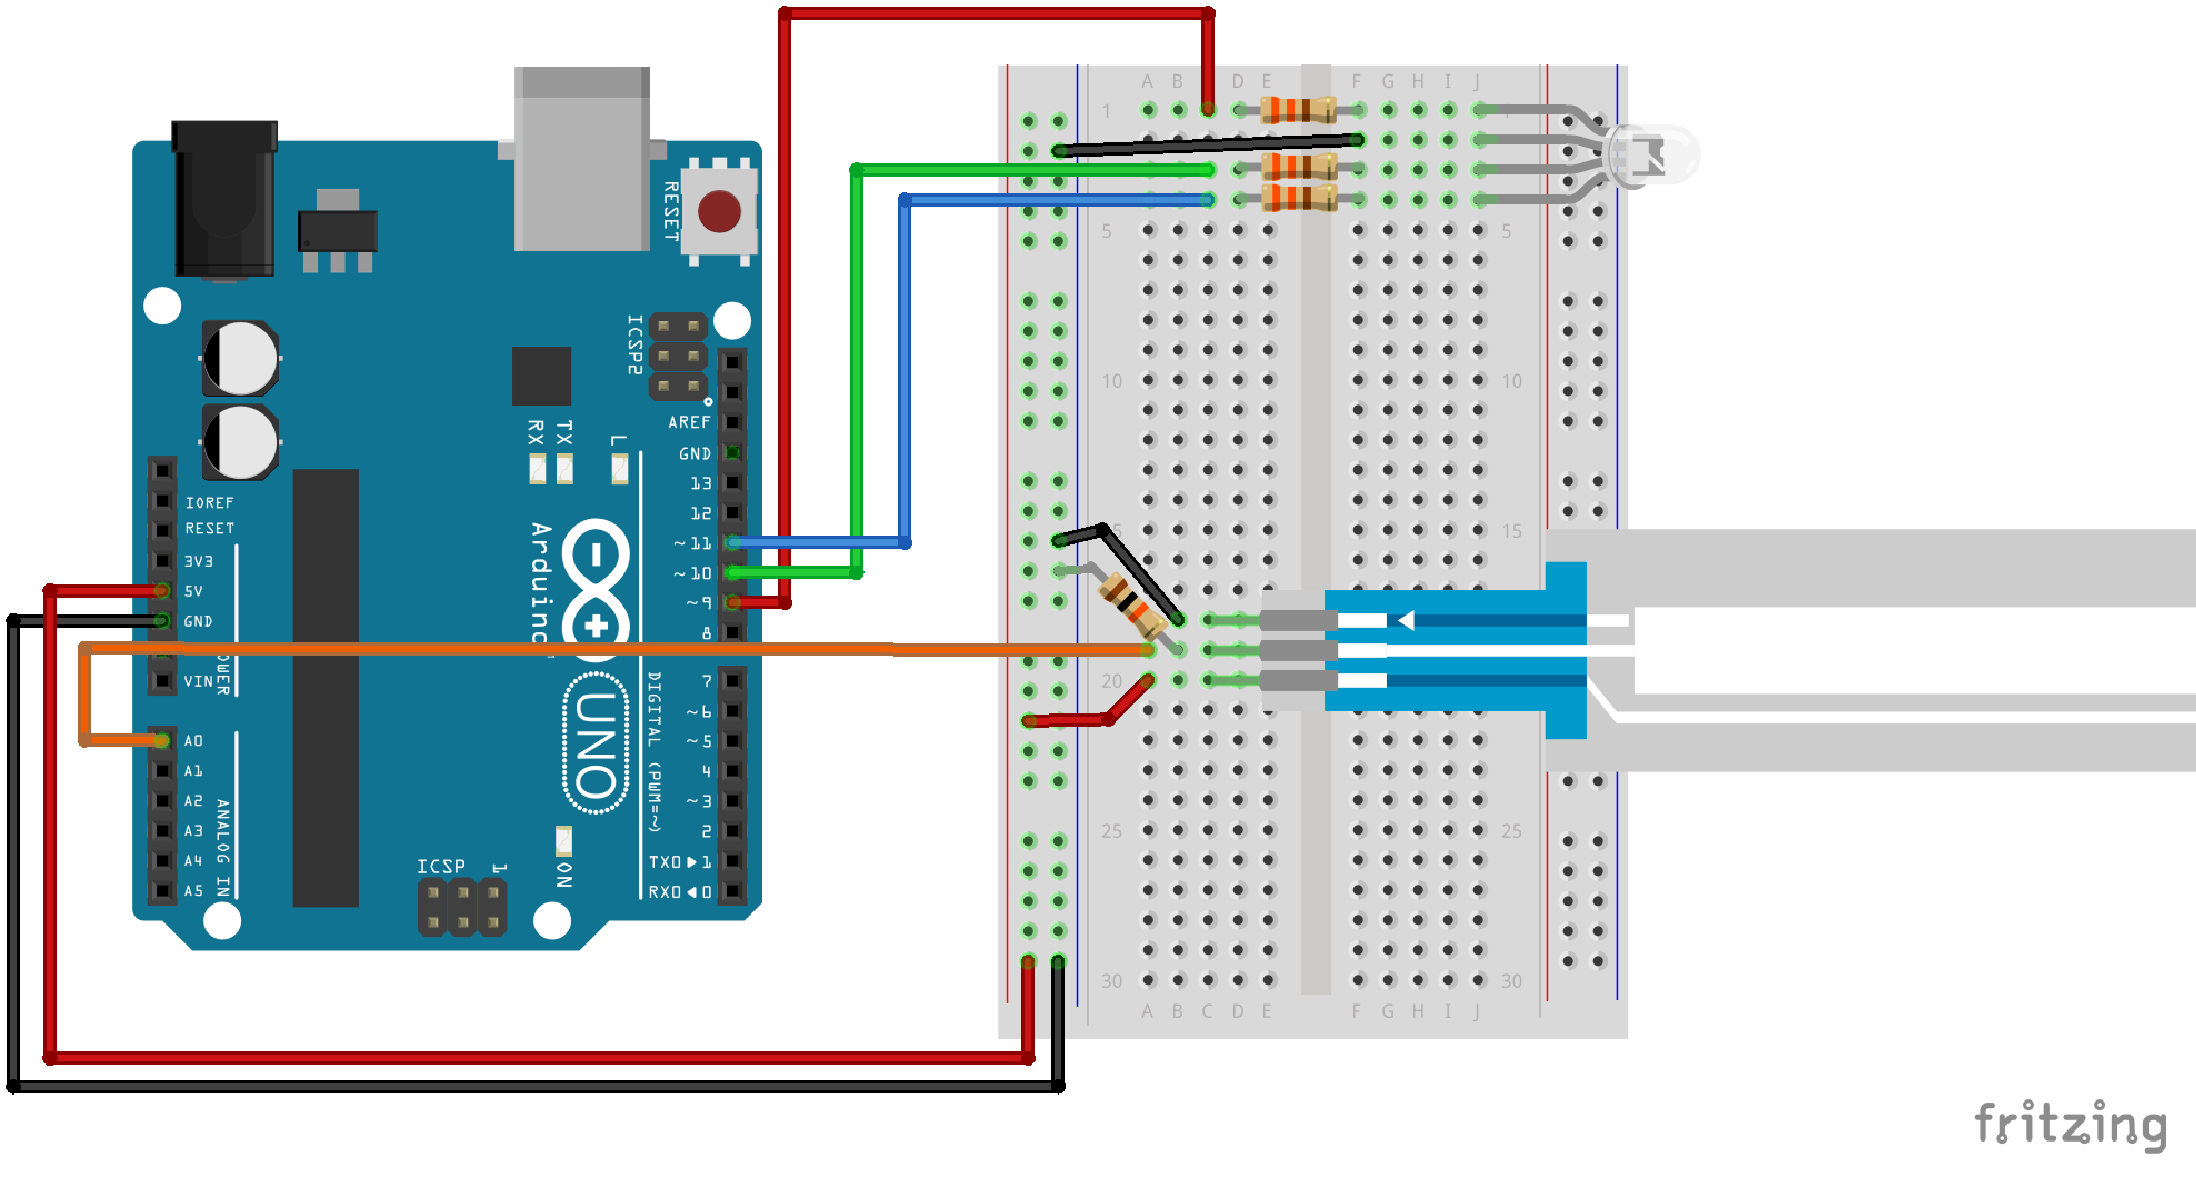 Arduino_circuit_10_02 01 sik experiment guide for arduino v3 2 learn sparkfun com arduino wiring diagram online at fashall.co